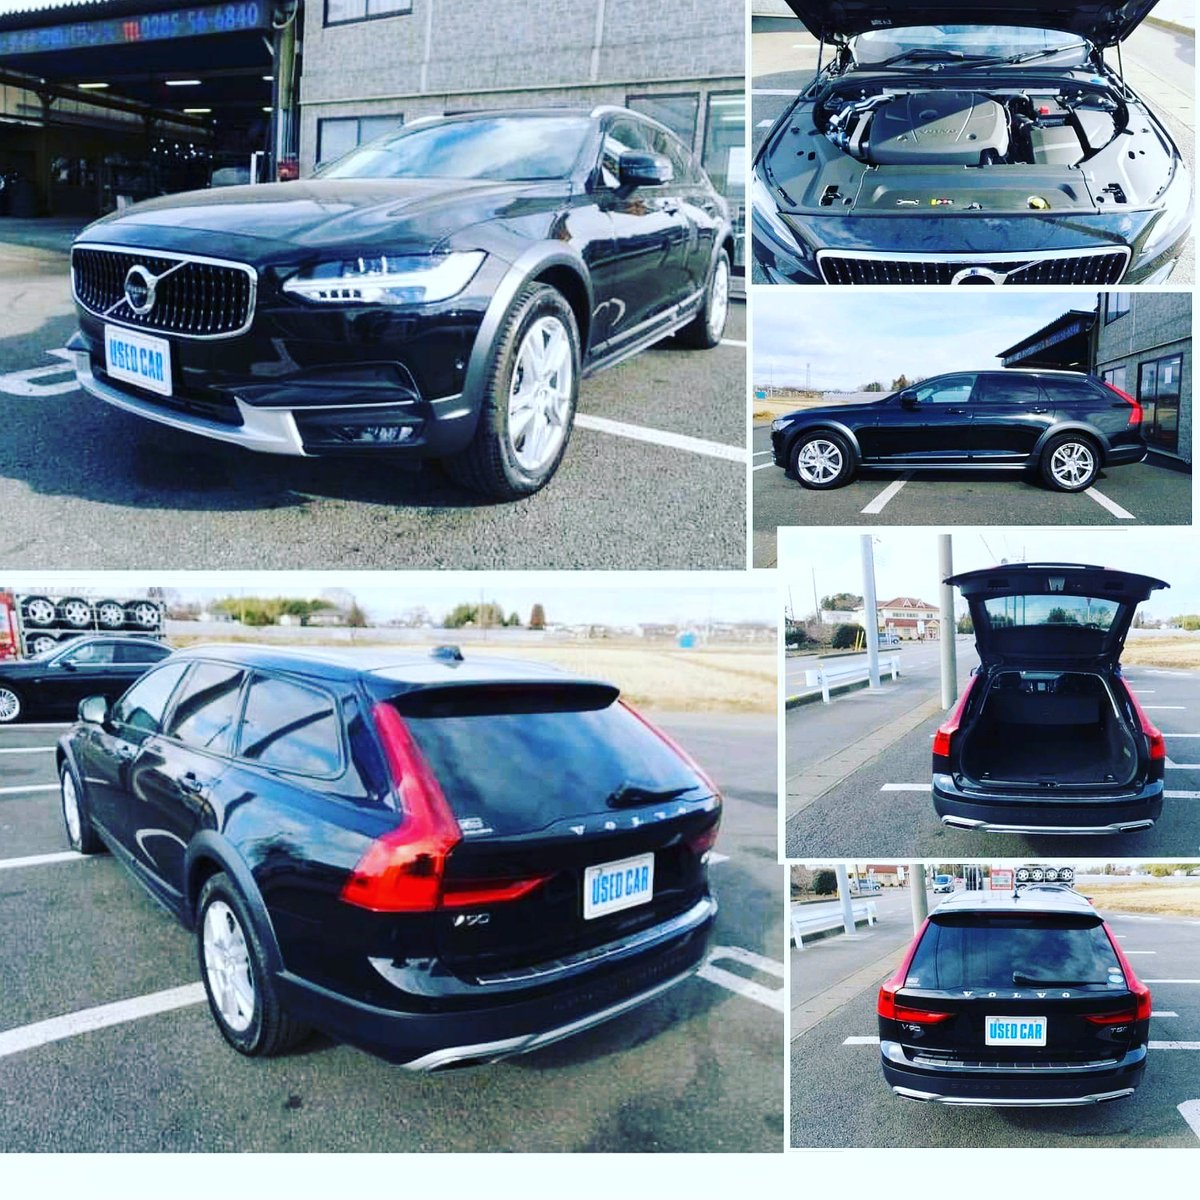 #Volvo V90,#Import Volvo #V90 @3.7m budget all cost inclusive(Duty,MVR,Clearance) Engine:2000cc, YOM:2017 Fuel:Petrol, Mileage:24500km, Drive:2WD, Black Leather interioir, Power Adjustable Seats ETC(Electronic Stability Control), Keyless Entry#wilsonsaffranautos +254725446971 pic.twitter.com/ygJElKalHX